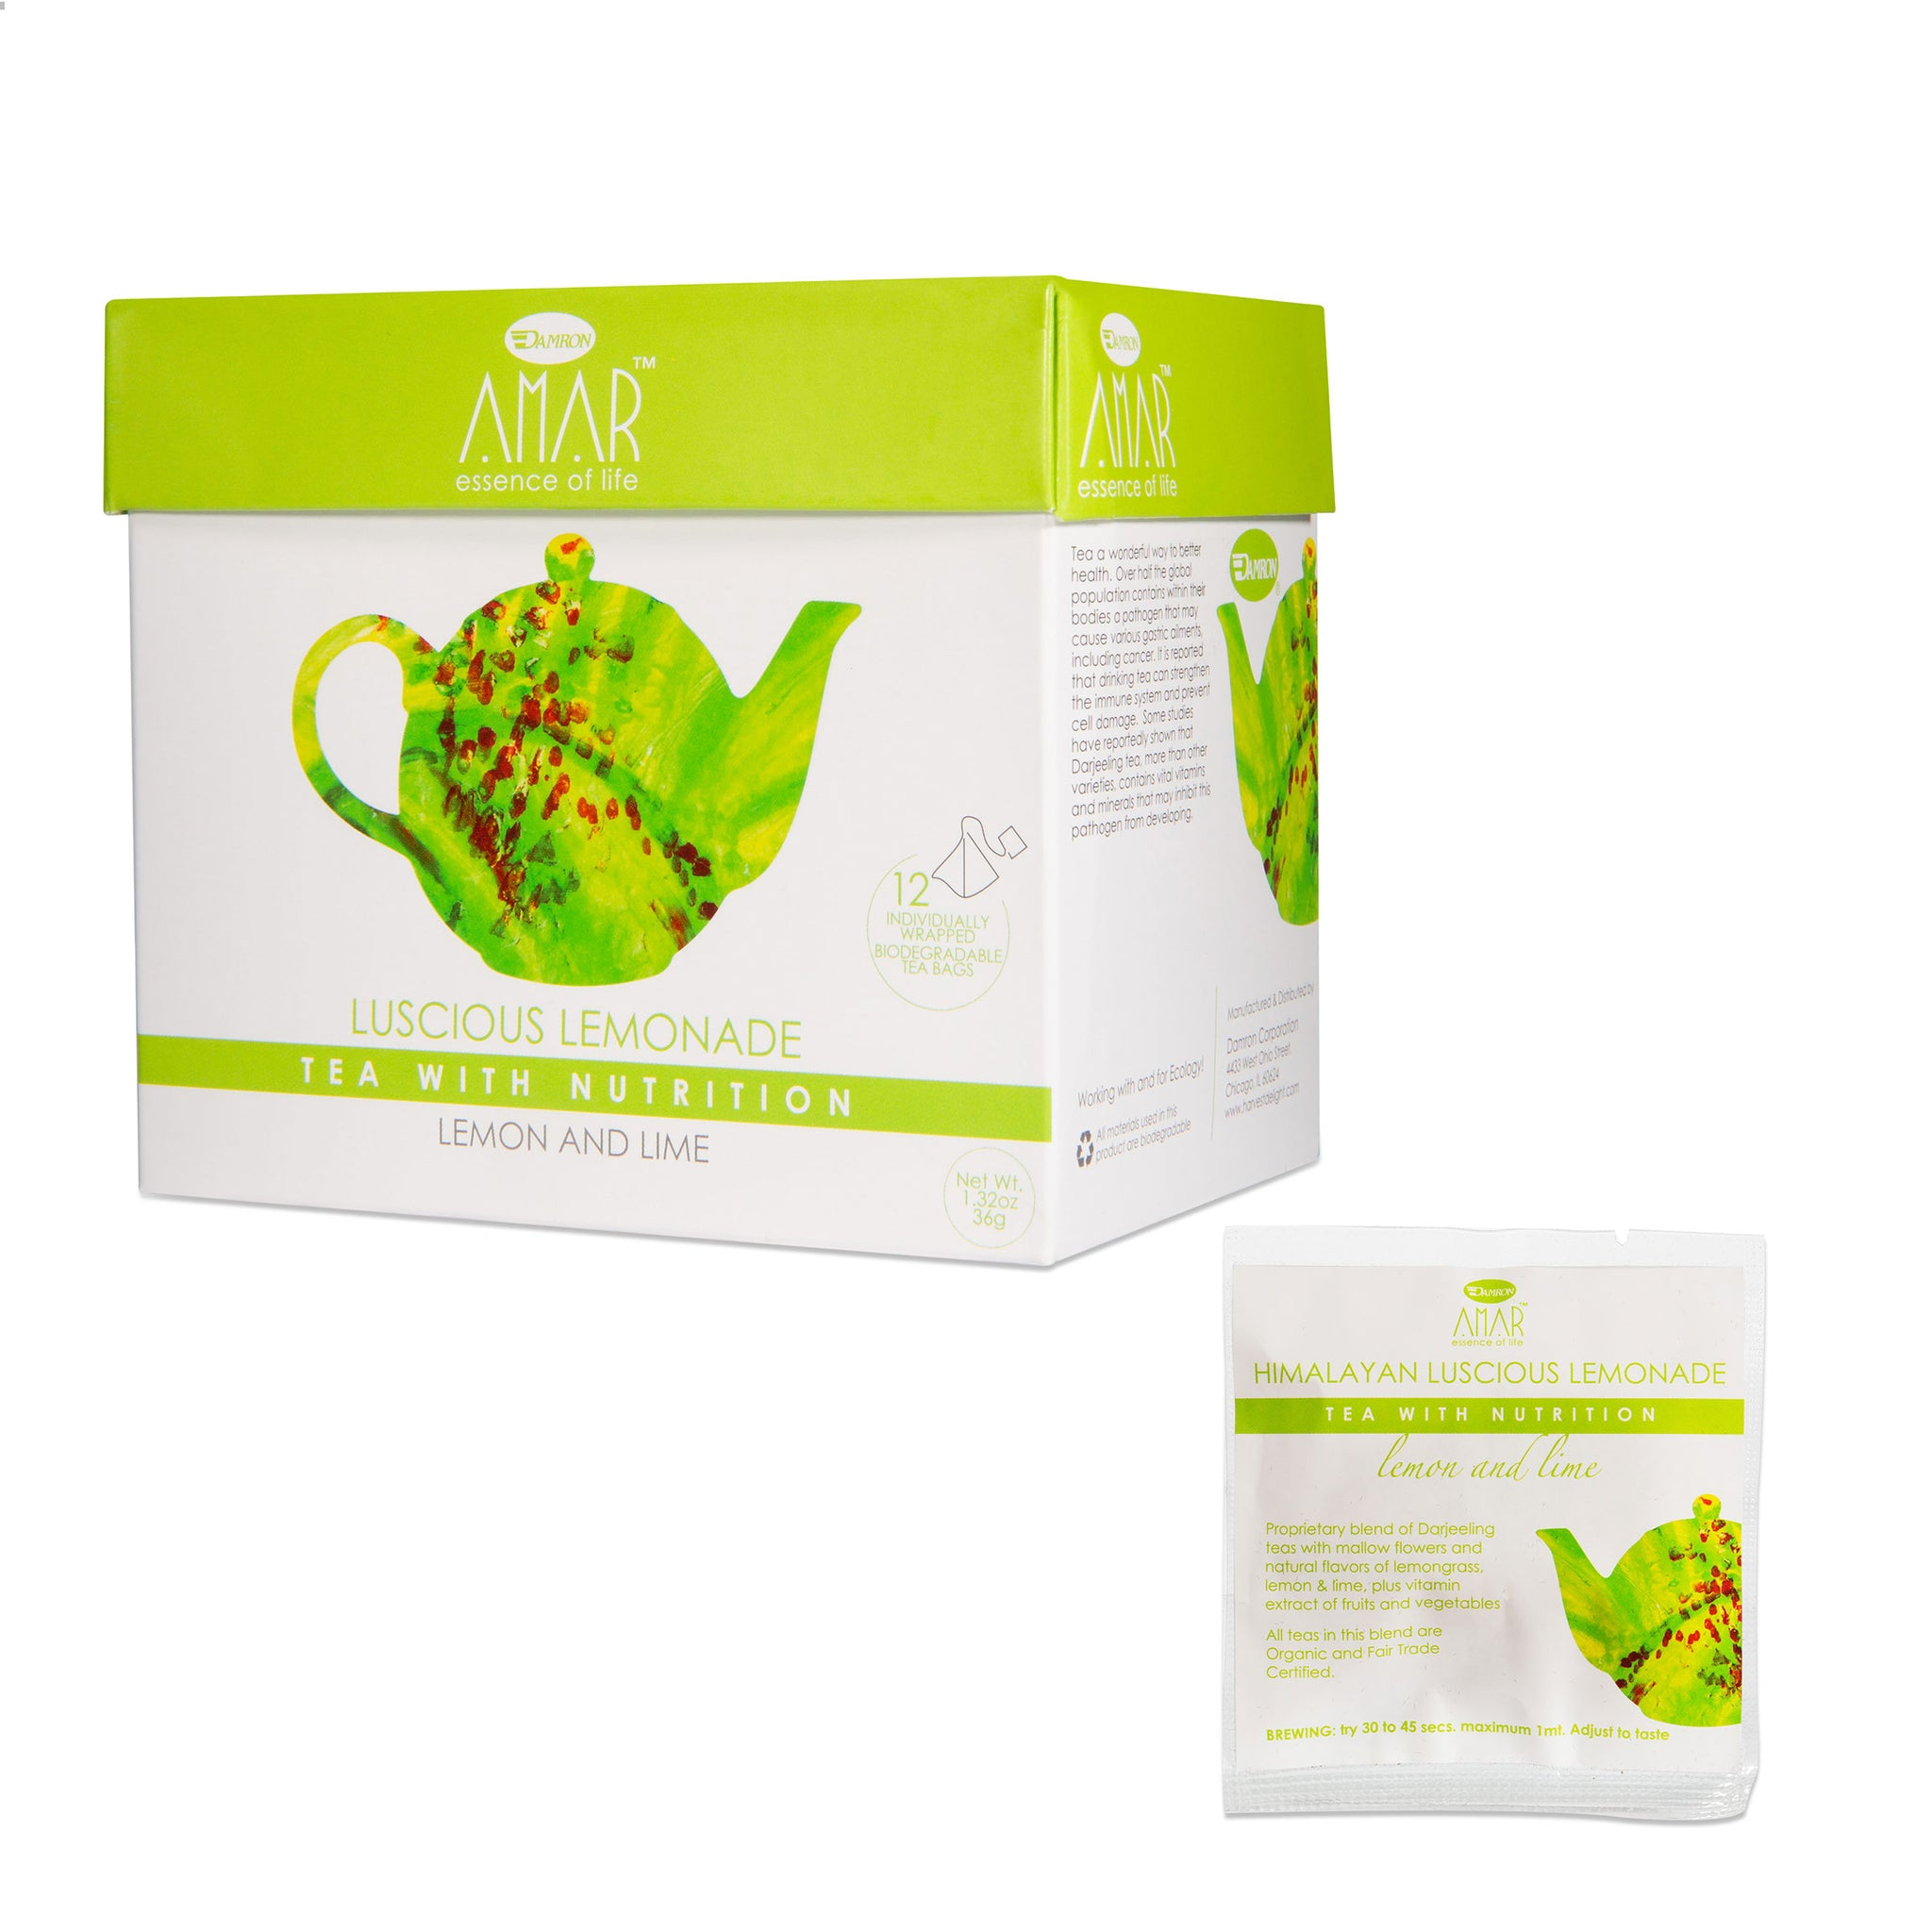 AMAR LUSCIOUS LEMONADE Green Tea Lemon & Lime